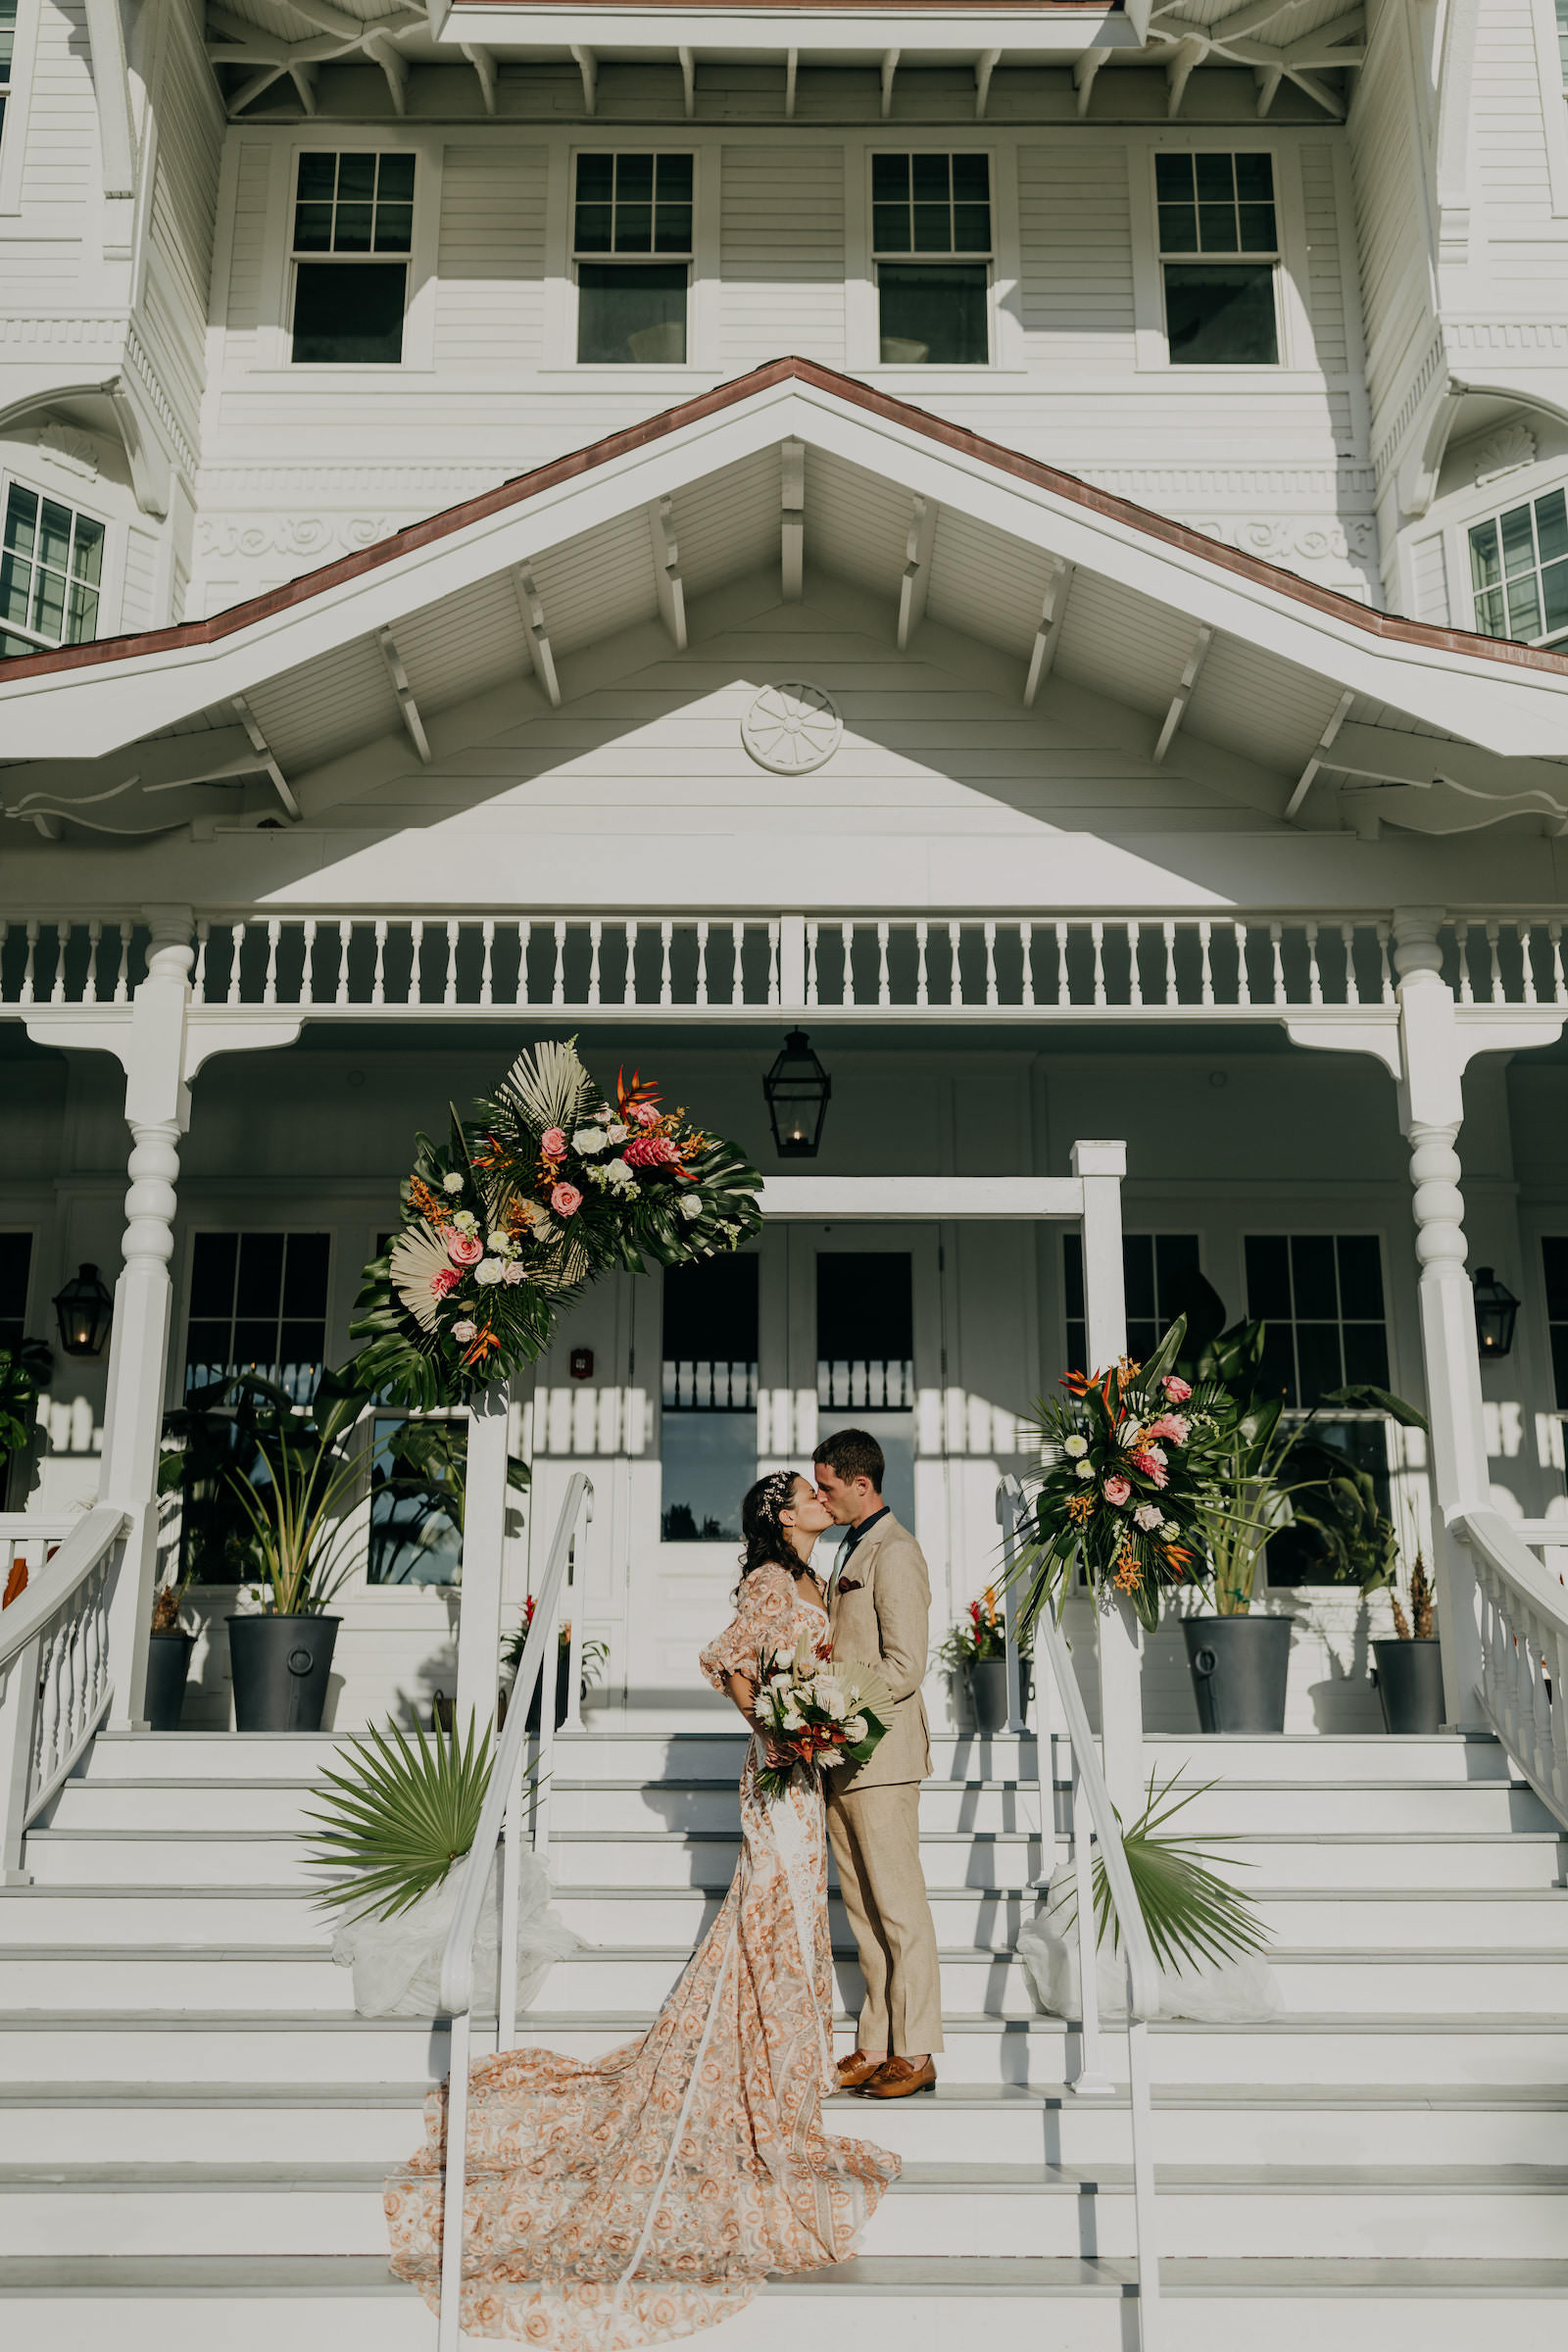 Outdoor Staircase Wedding Ceremony Bride and Groom Portrait on Belleview Inn Staircase   Boho Gold Bronze Embroidered Overlay Wedding Dress Bridal Gown with Illusion Sleeves and Train   Groom in Grey Khaki Linen Suit   Tropical Boho Bridal Bouquet and White Arch Backdrop with Palm Frond Leaf Coral Orange Pink and Greenery Floral Arrangements   Amber McWhorter Photography